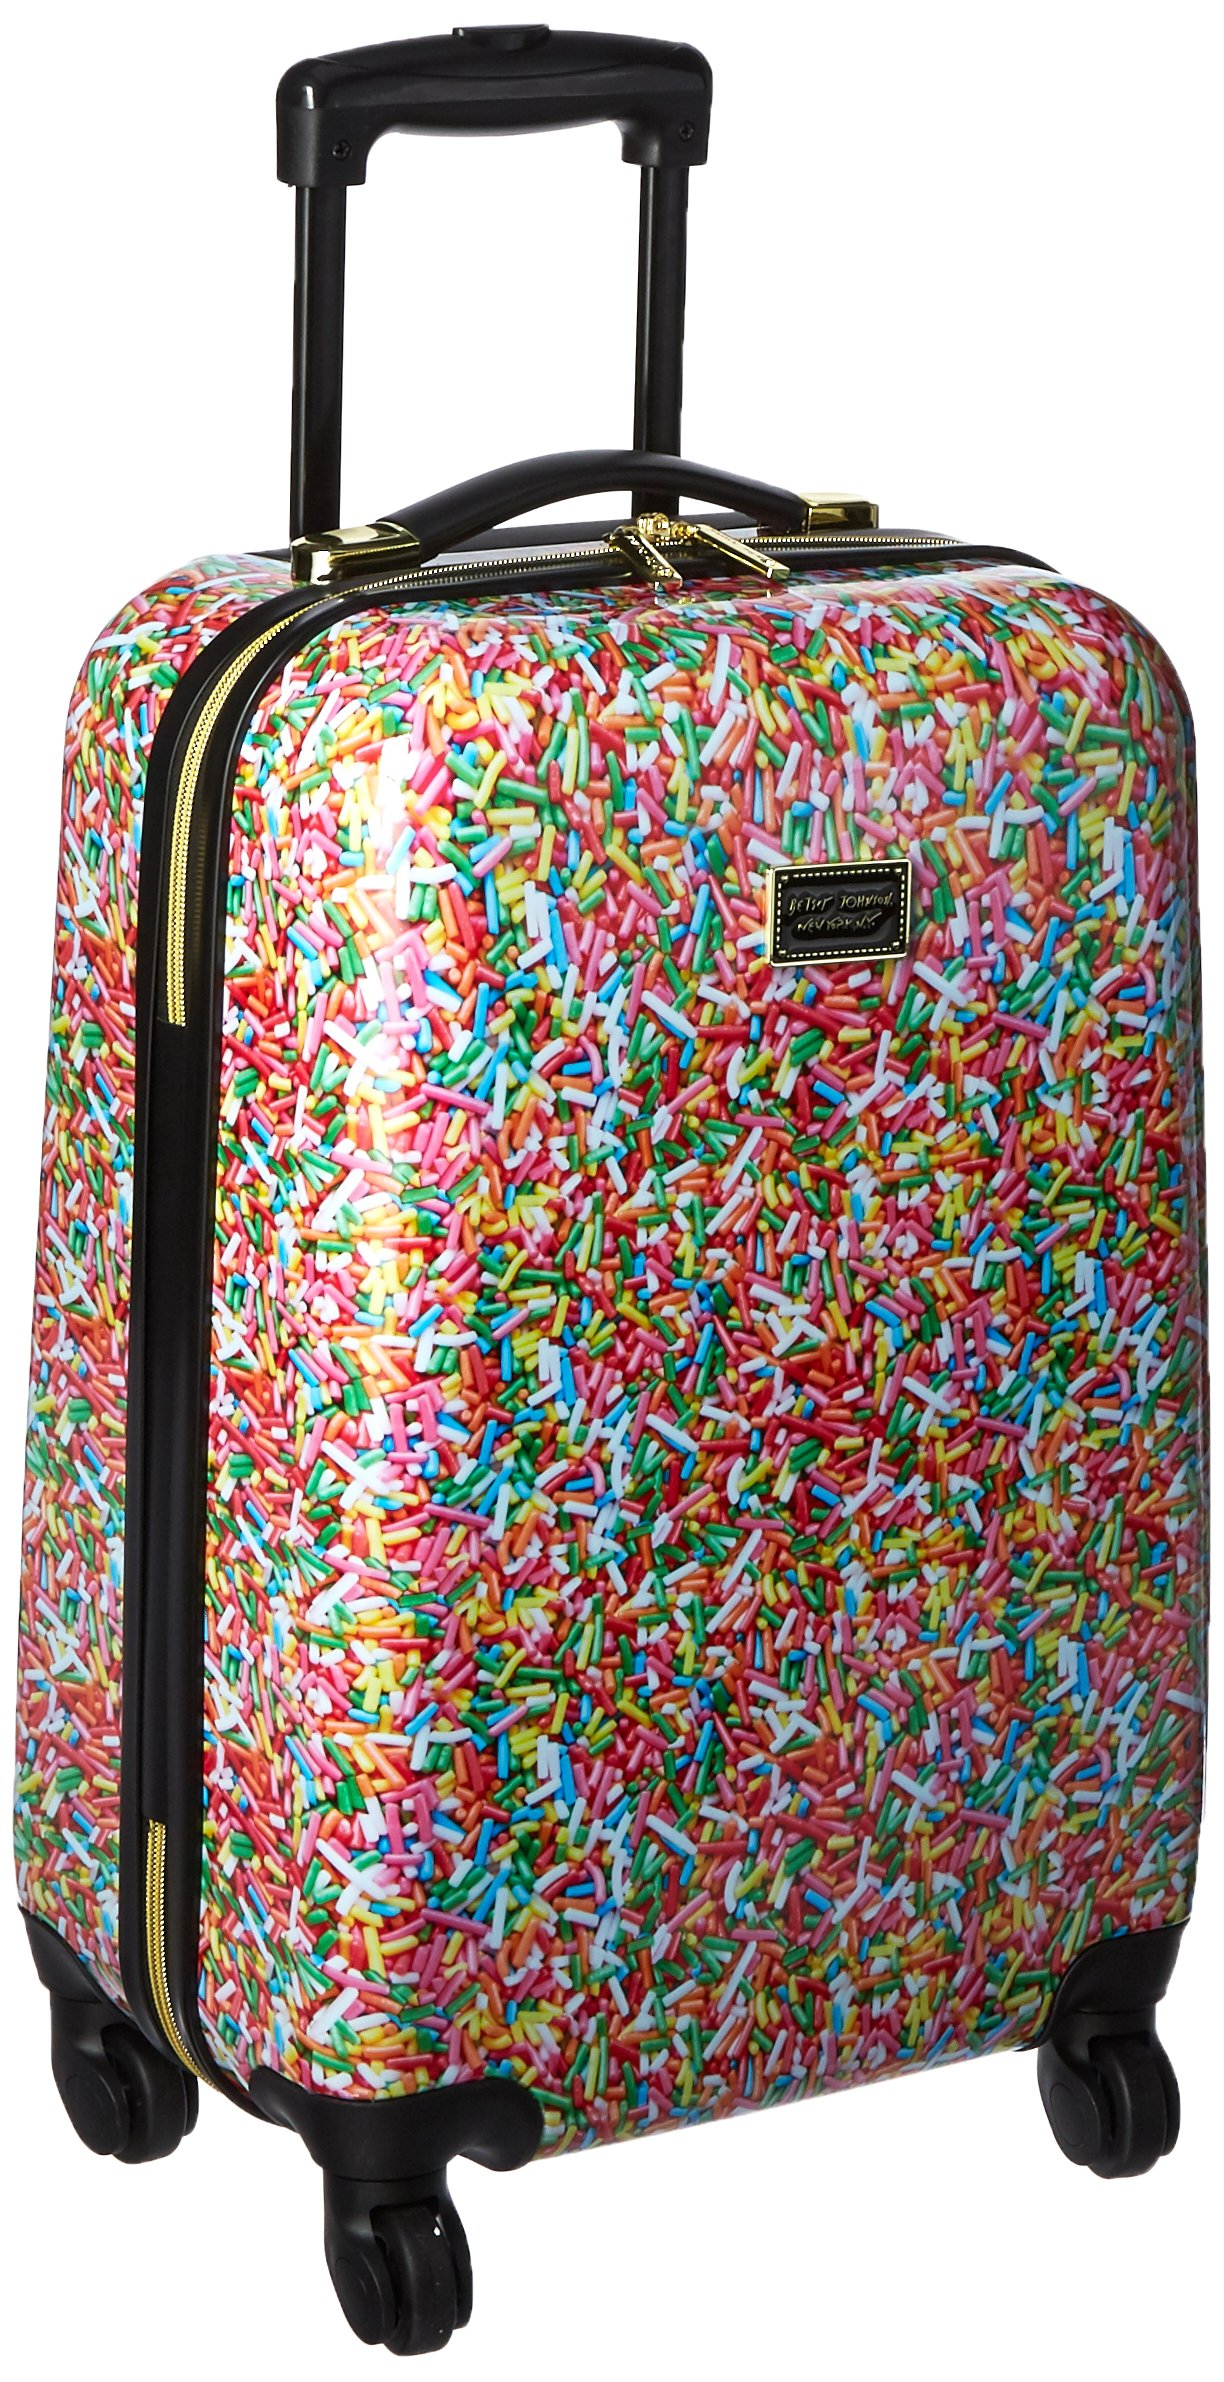 Betsey Johnson Hardside Spinner Carry-on Suitcase 20'', Multi Colored